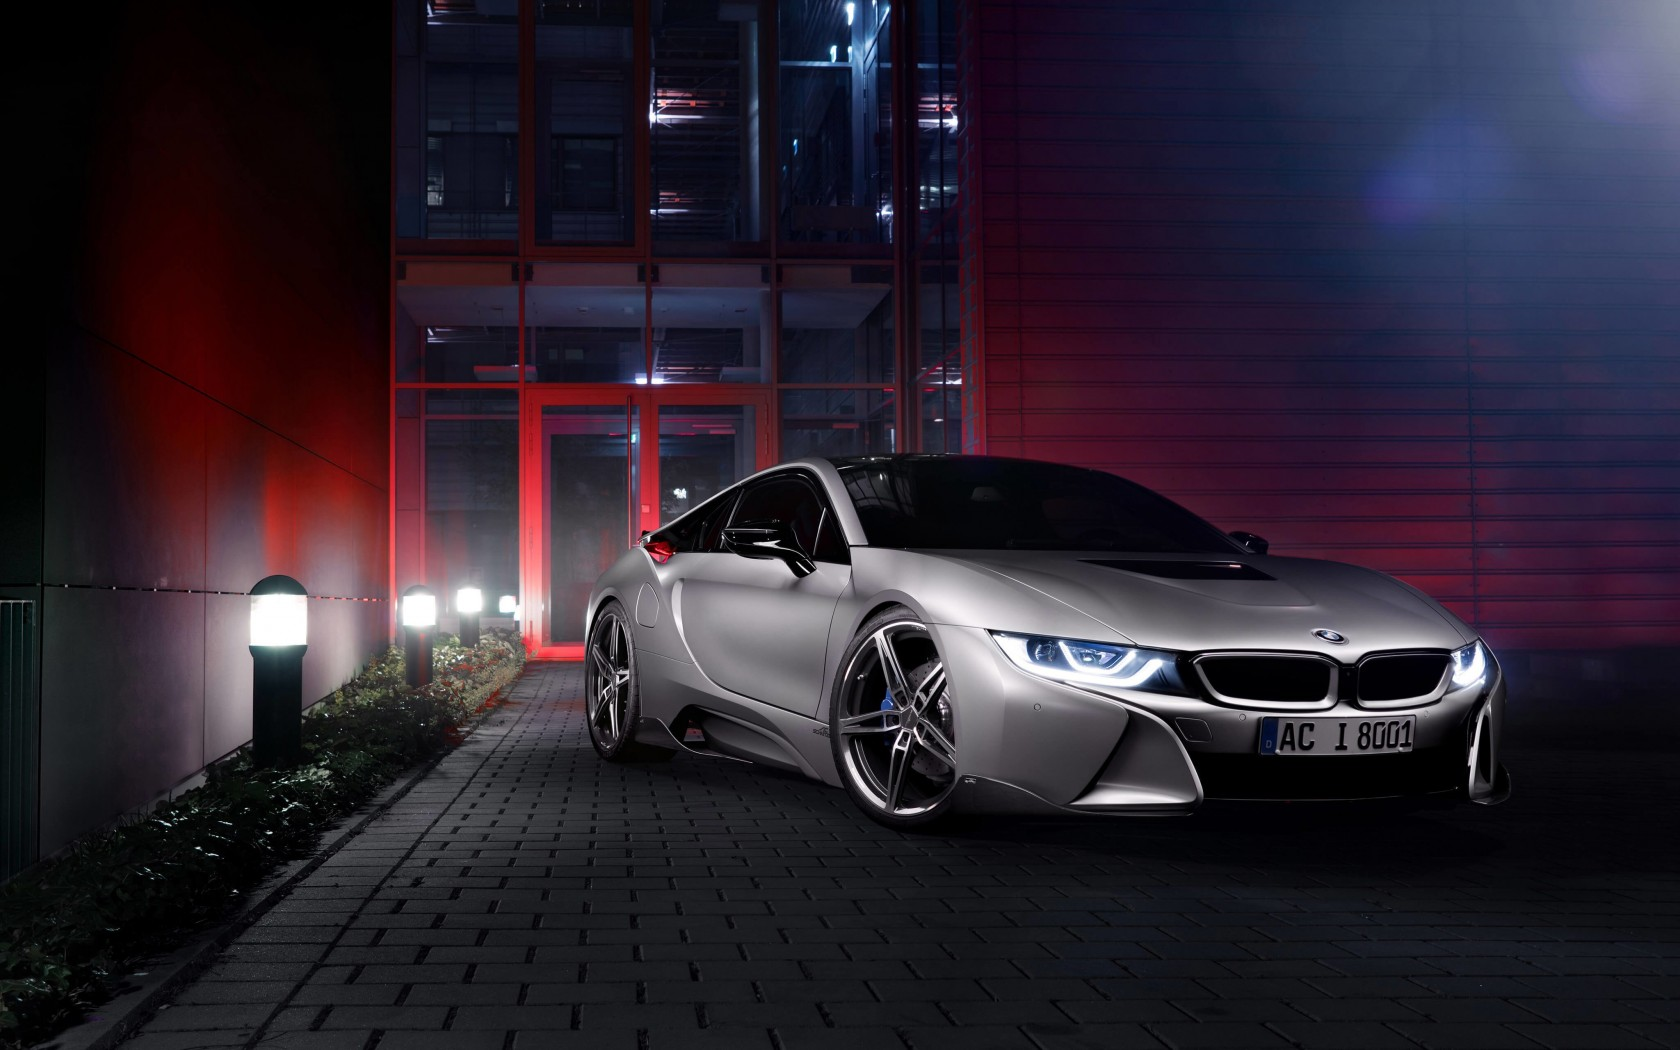 BMW i8 designed by AC Schnitzer Wallpaper for Desktop 1680x1050